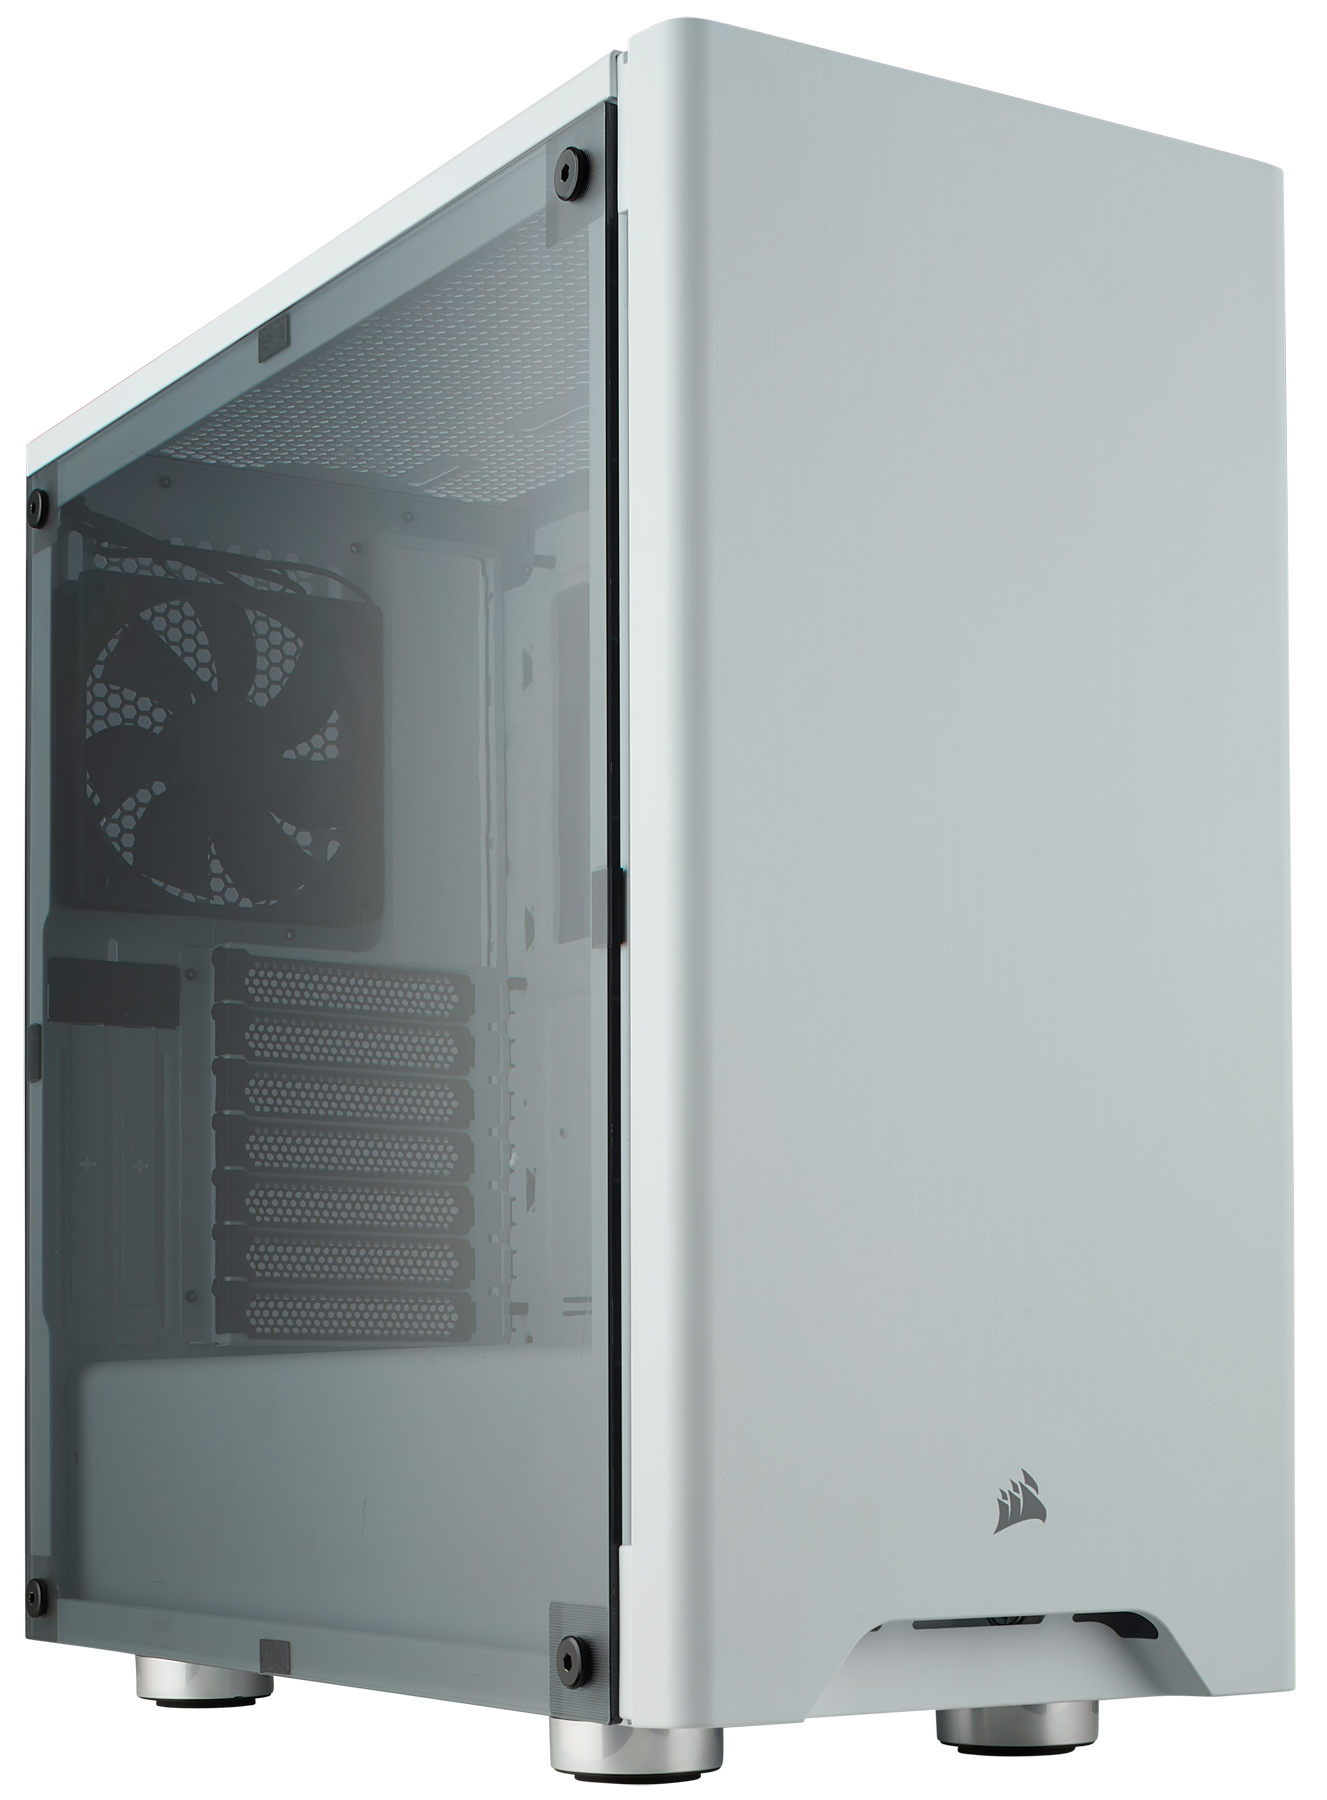 new styles 61d15 6f313 Corsair Carbide Series 275R Mid-Tower Gaming Case, White - Newegg.com